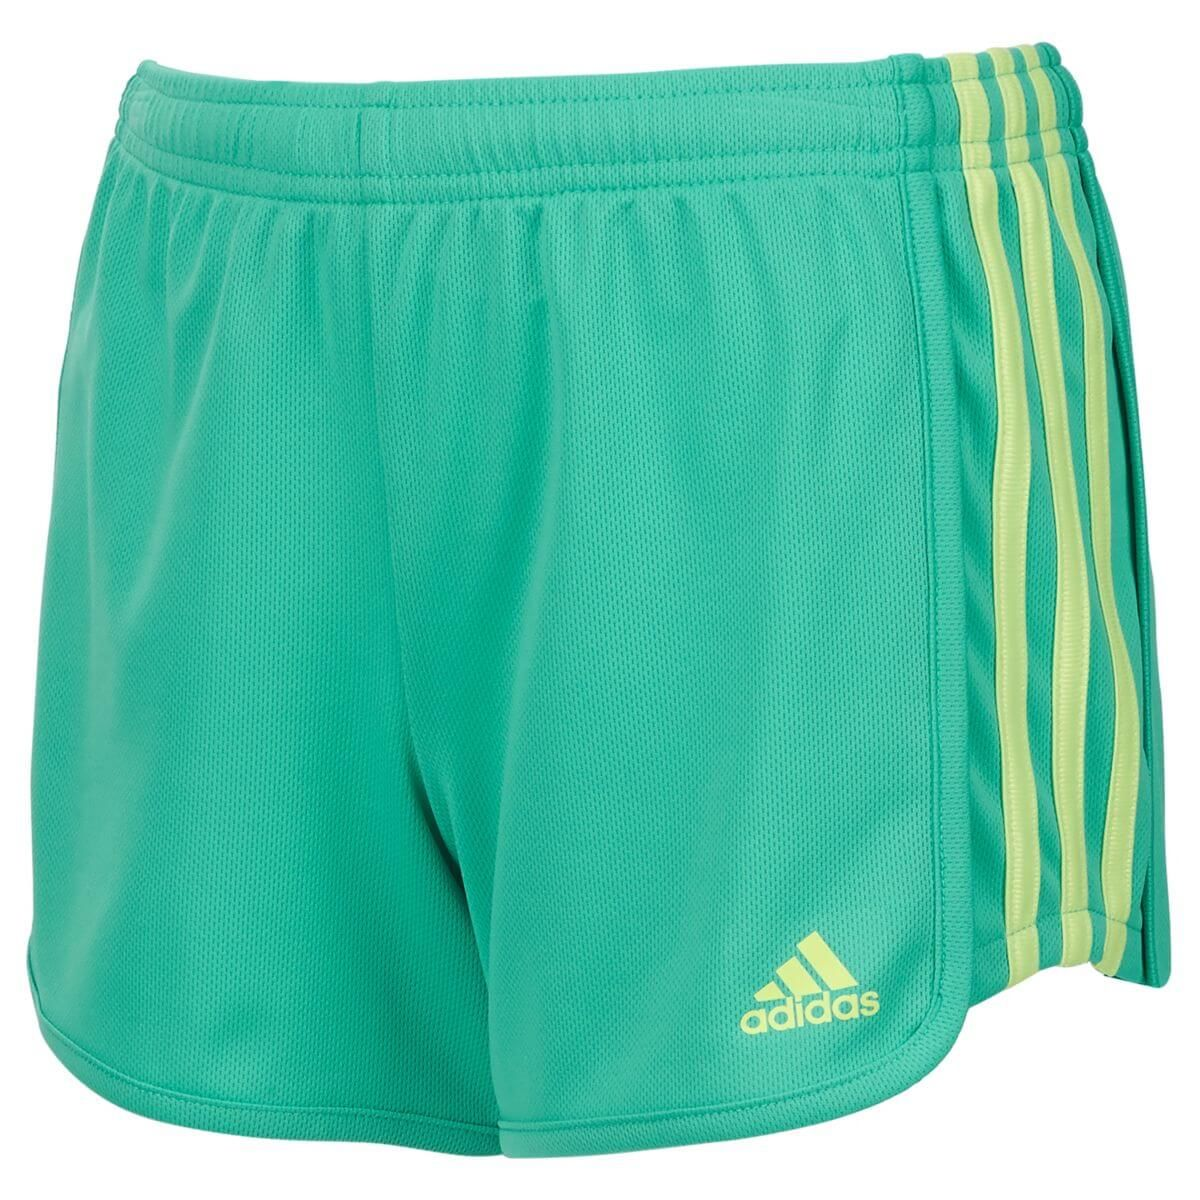 adidas 3 Stripes Girls Mesh Short